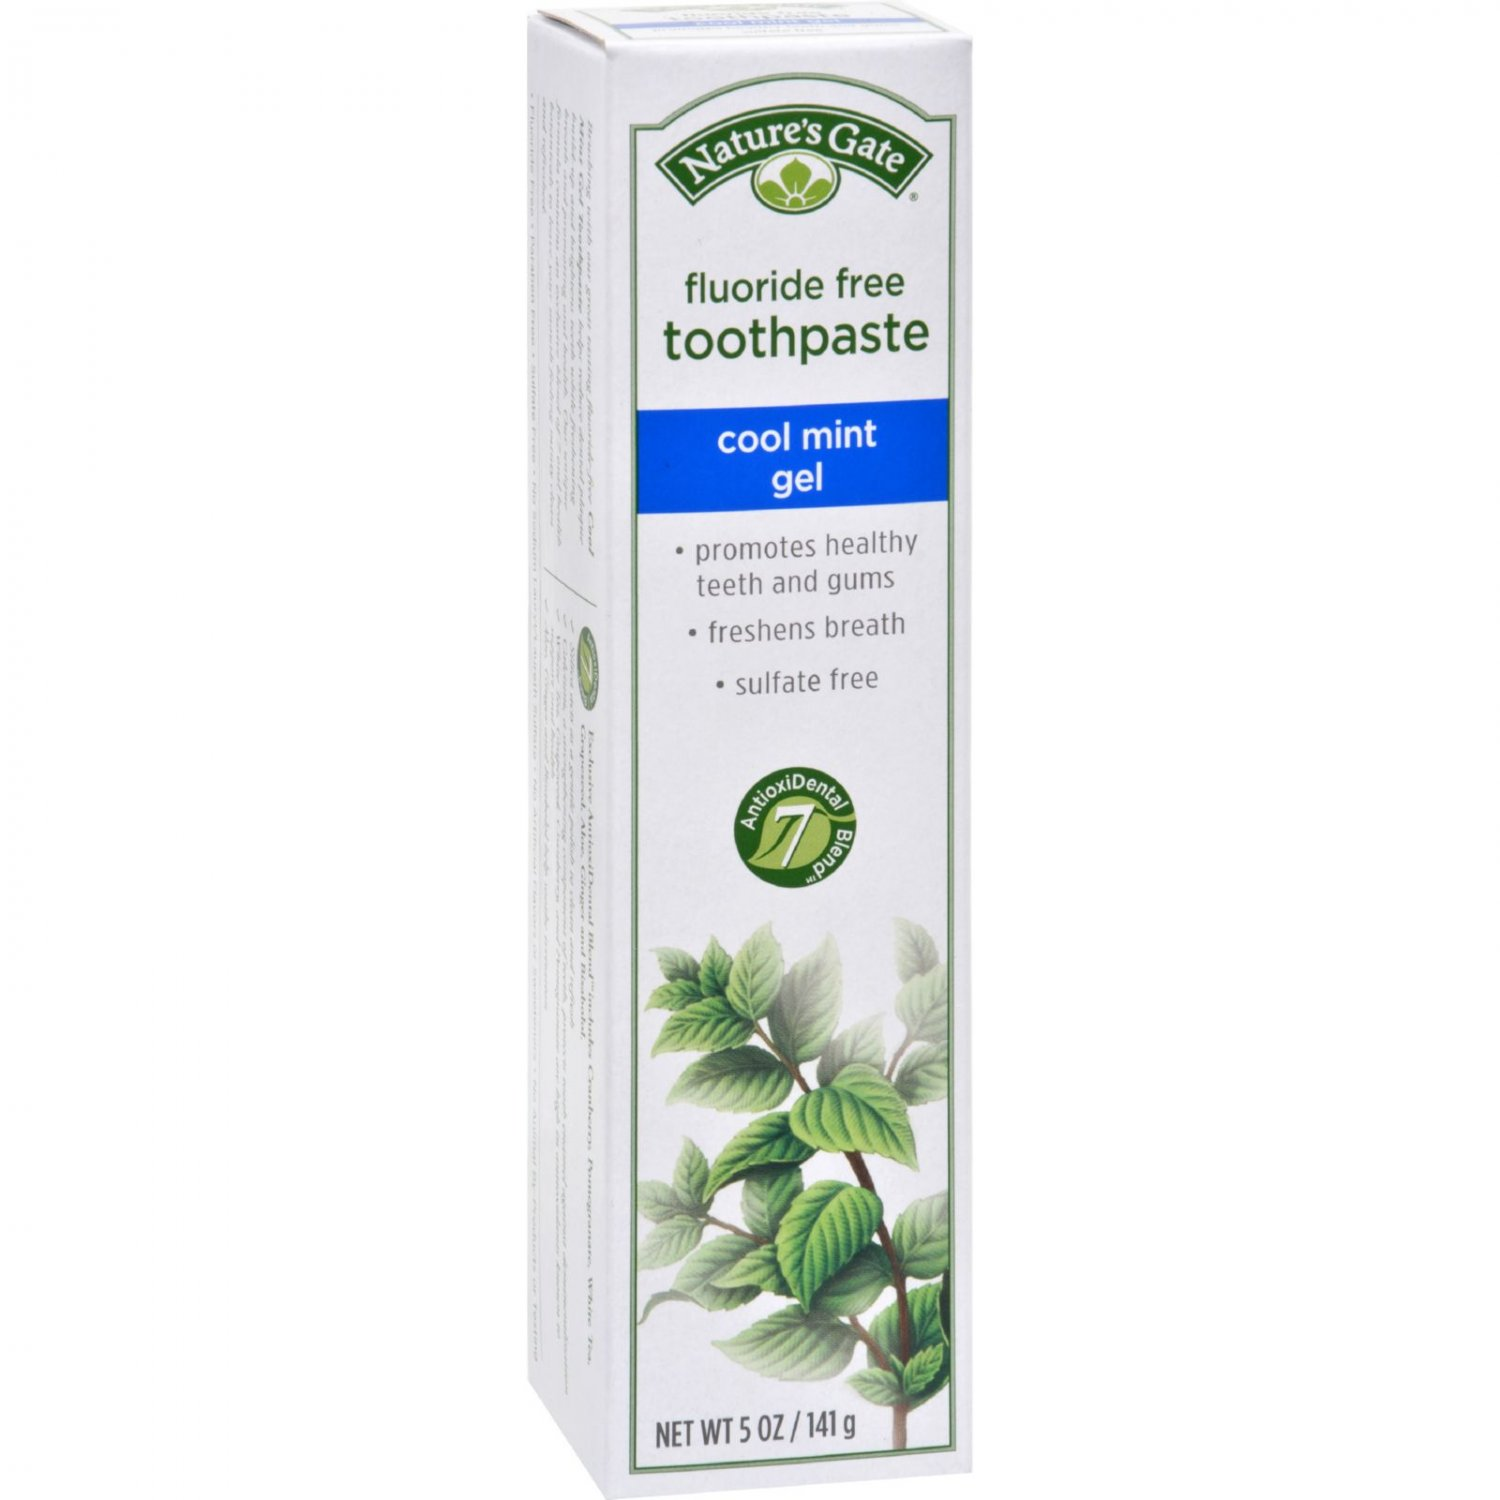 Nature's Gate Natural Toothpaste Gel Flouride Free Cool Mint - 5 oz - Case of 6